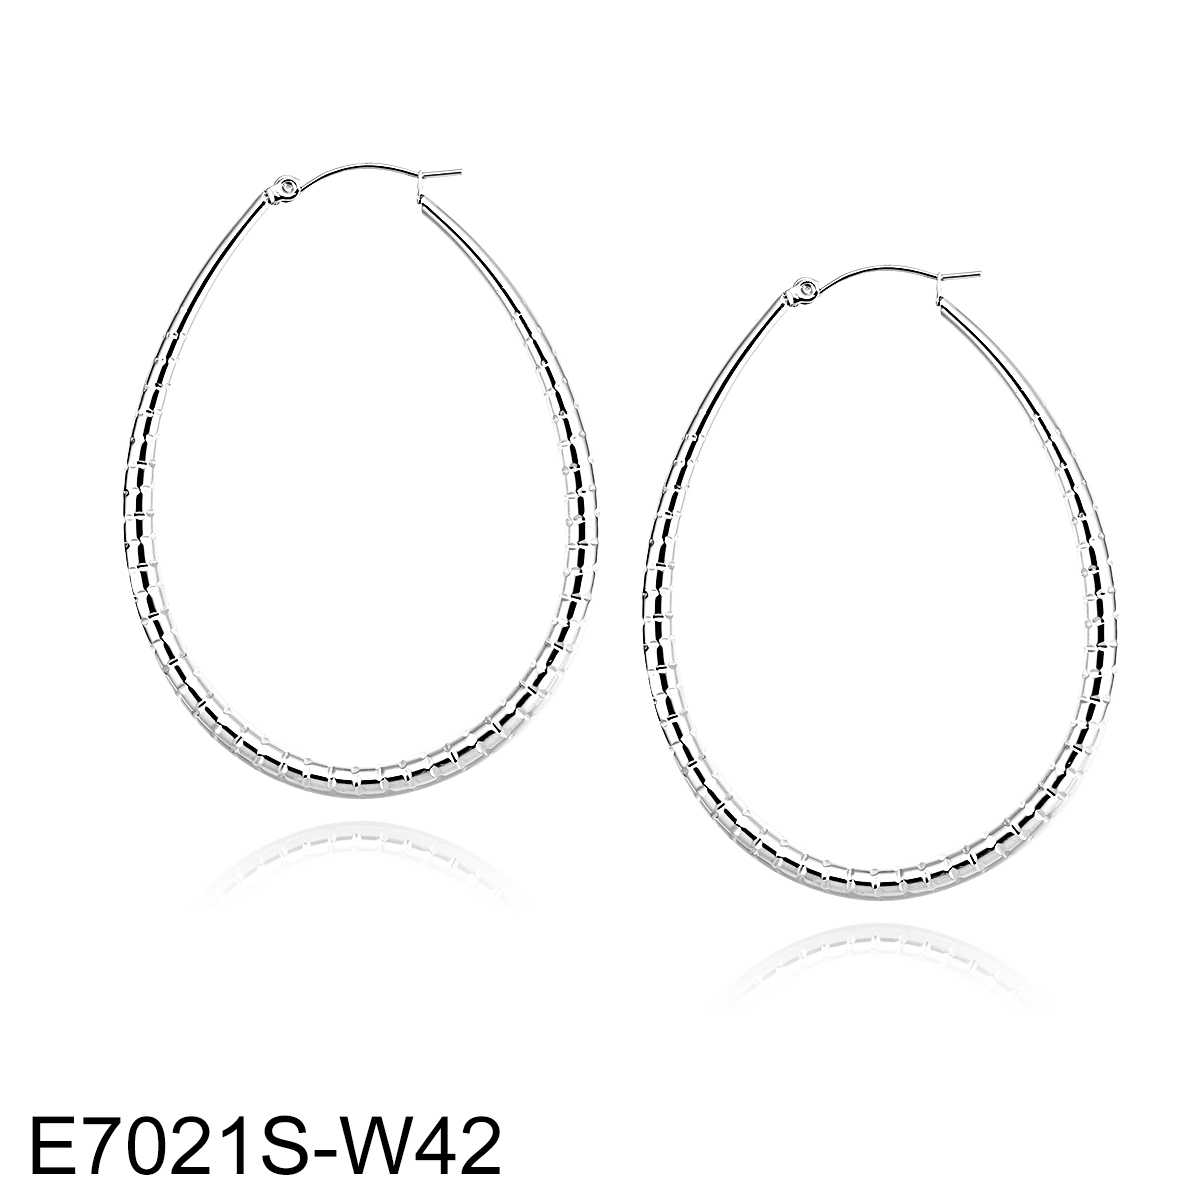 E7021S-W42 Large oval endl...